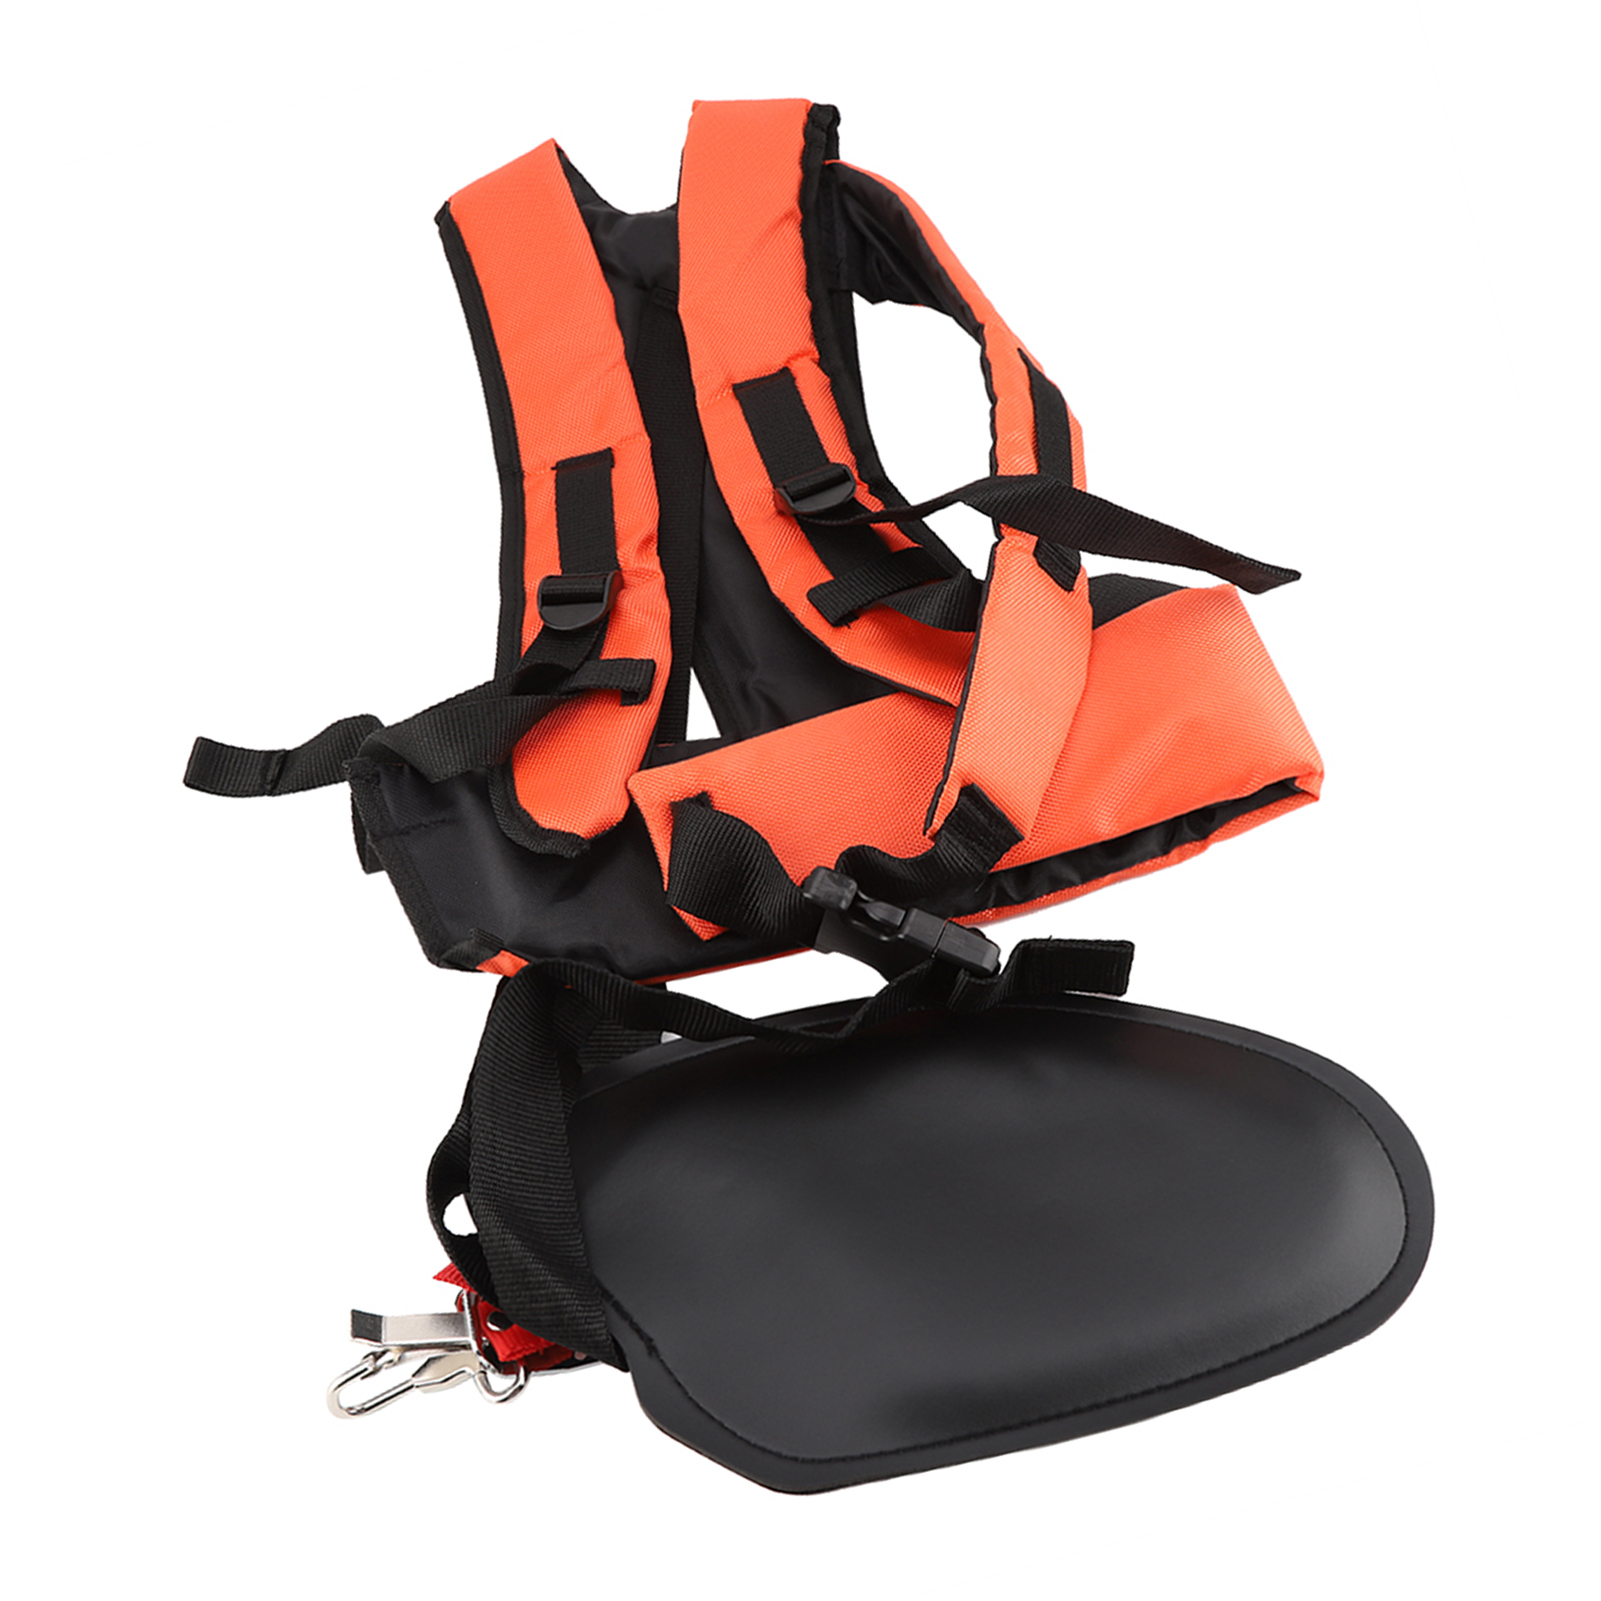 Responsible Universal Trimmer Double Shoulder Strap Mower Nylon Y-shaped Belt For Brush Cutter Garden Tool High Quality Fixing Prices According To Quality Of Products Pole Saws